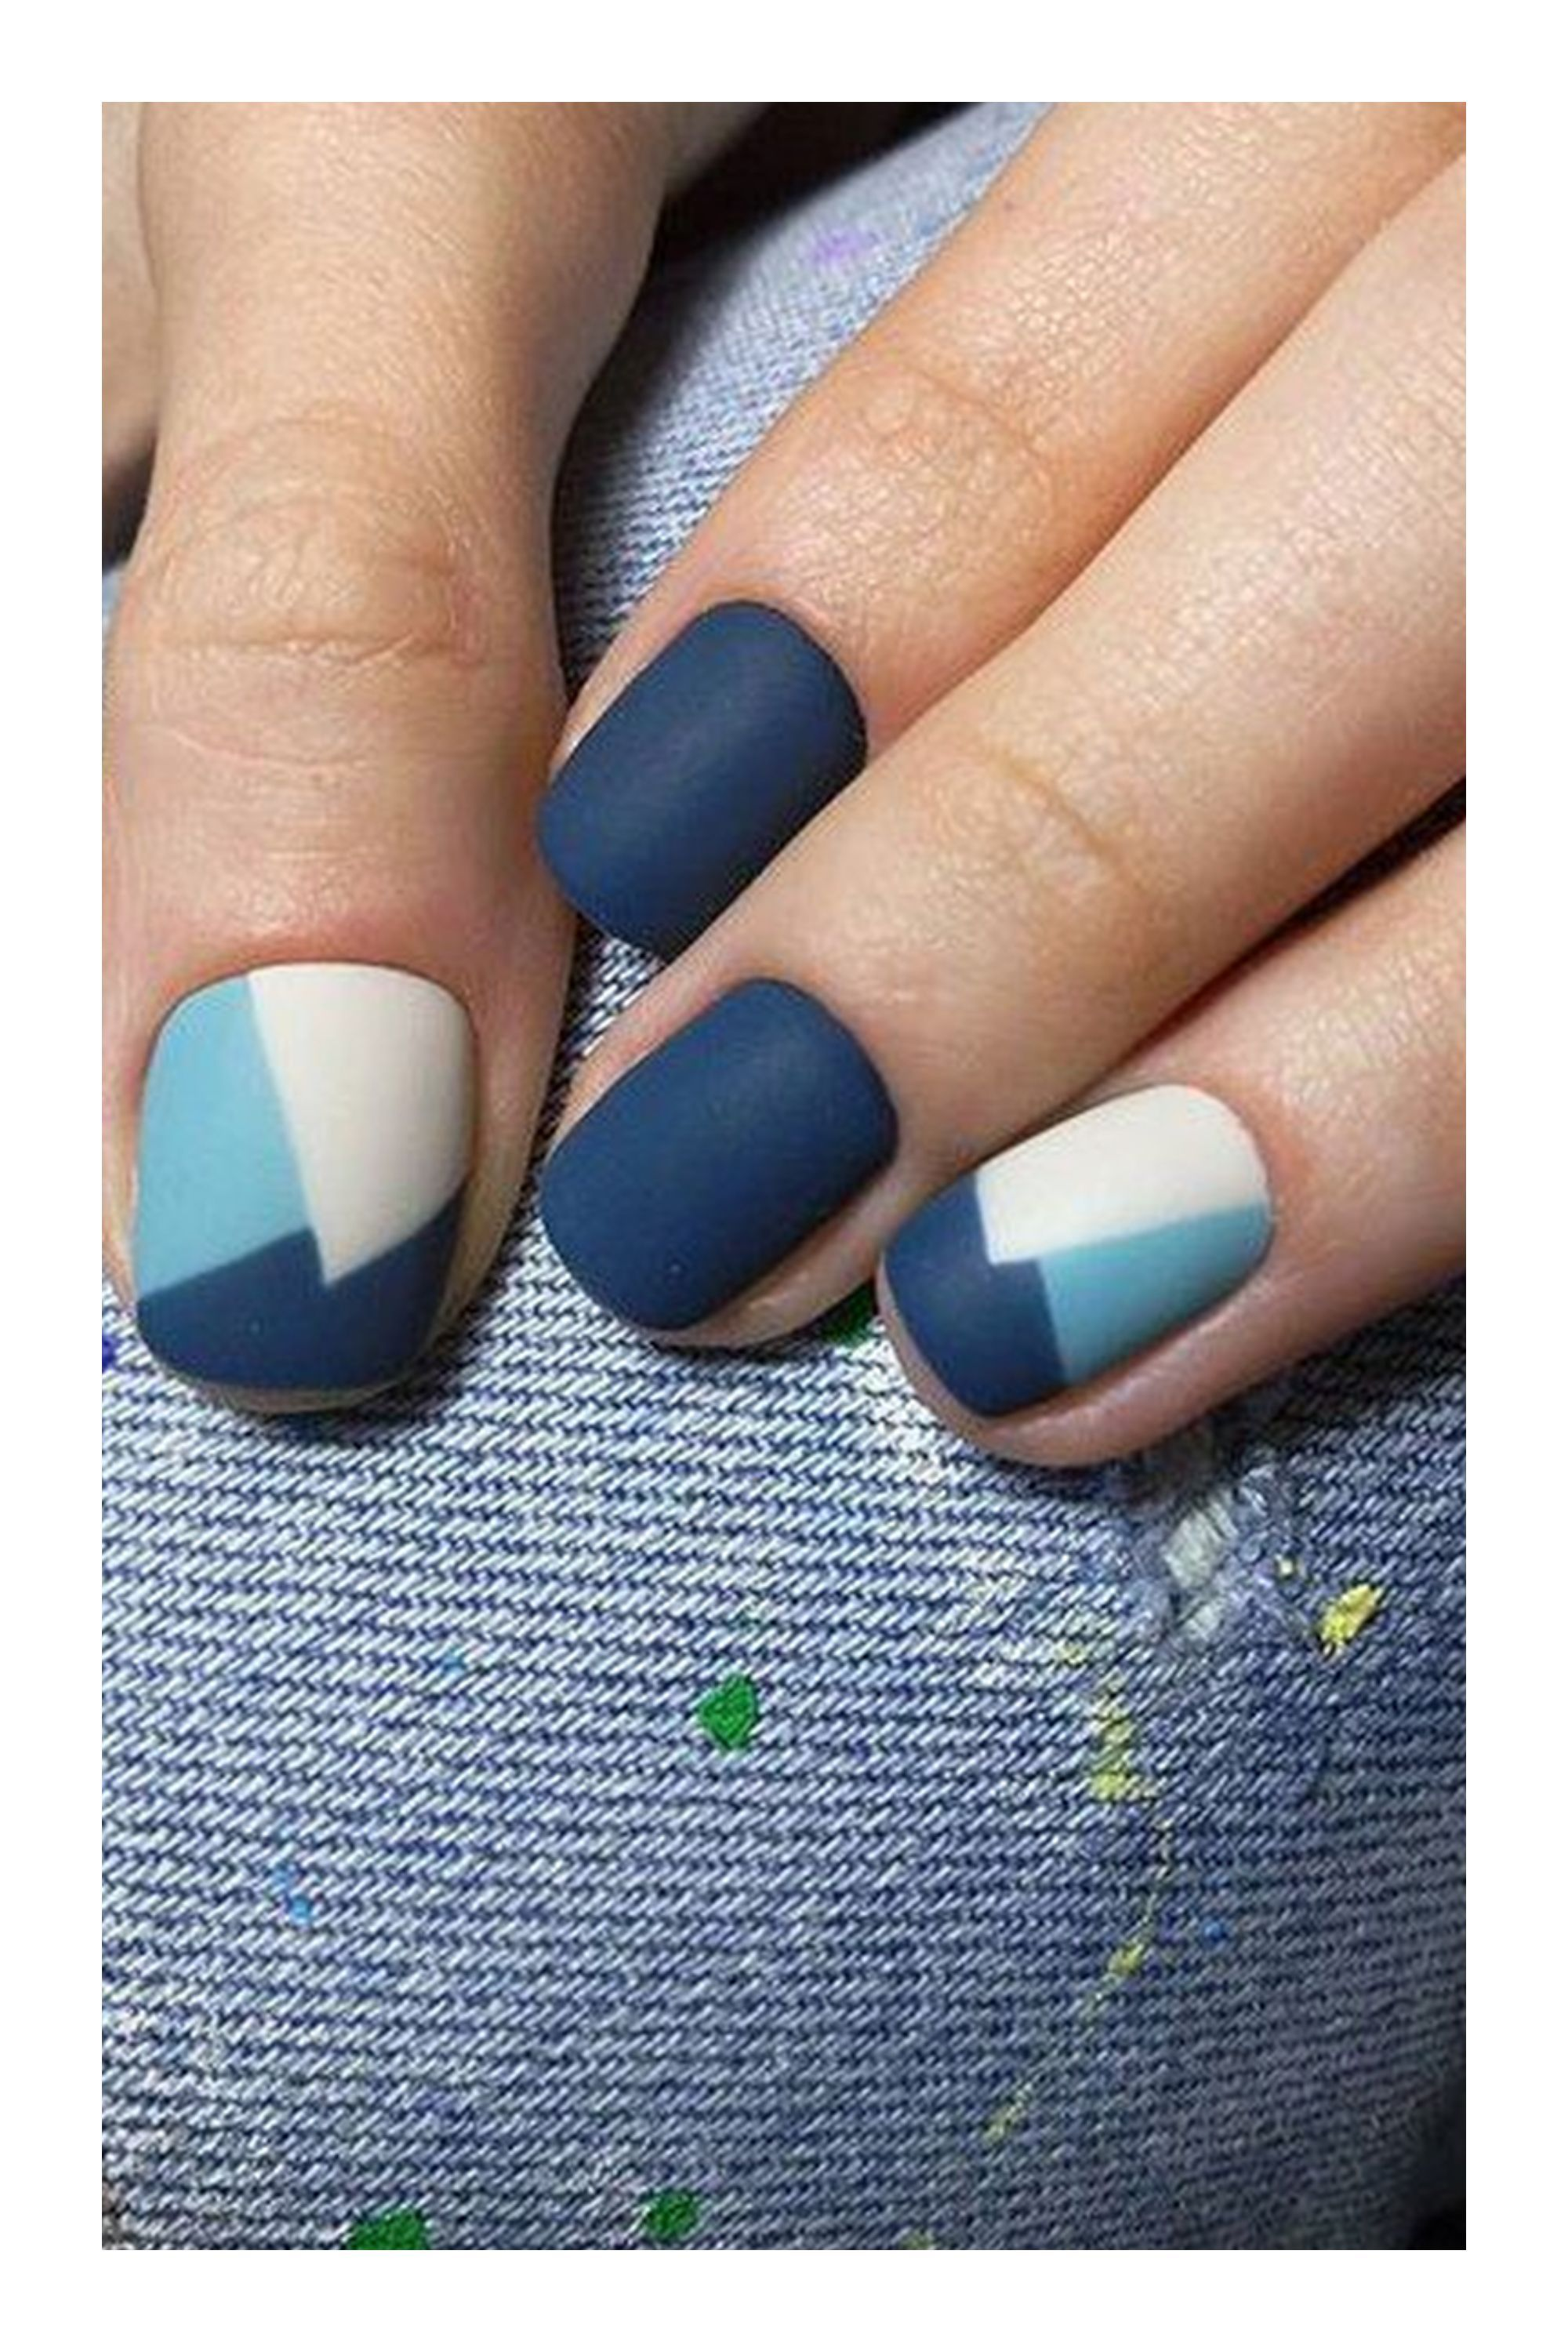 22 Effective and Beautiful Nail Art in 2020